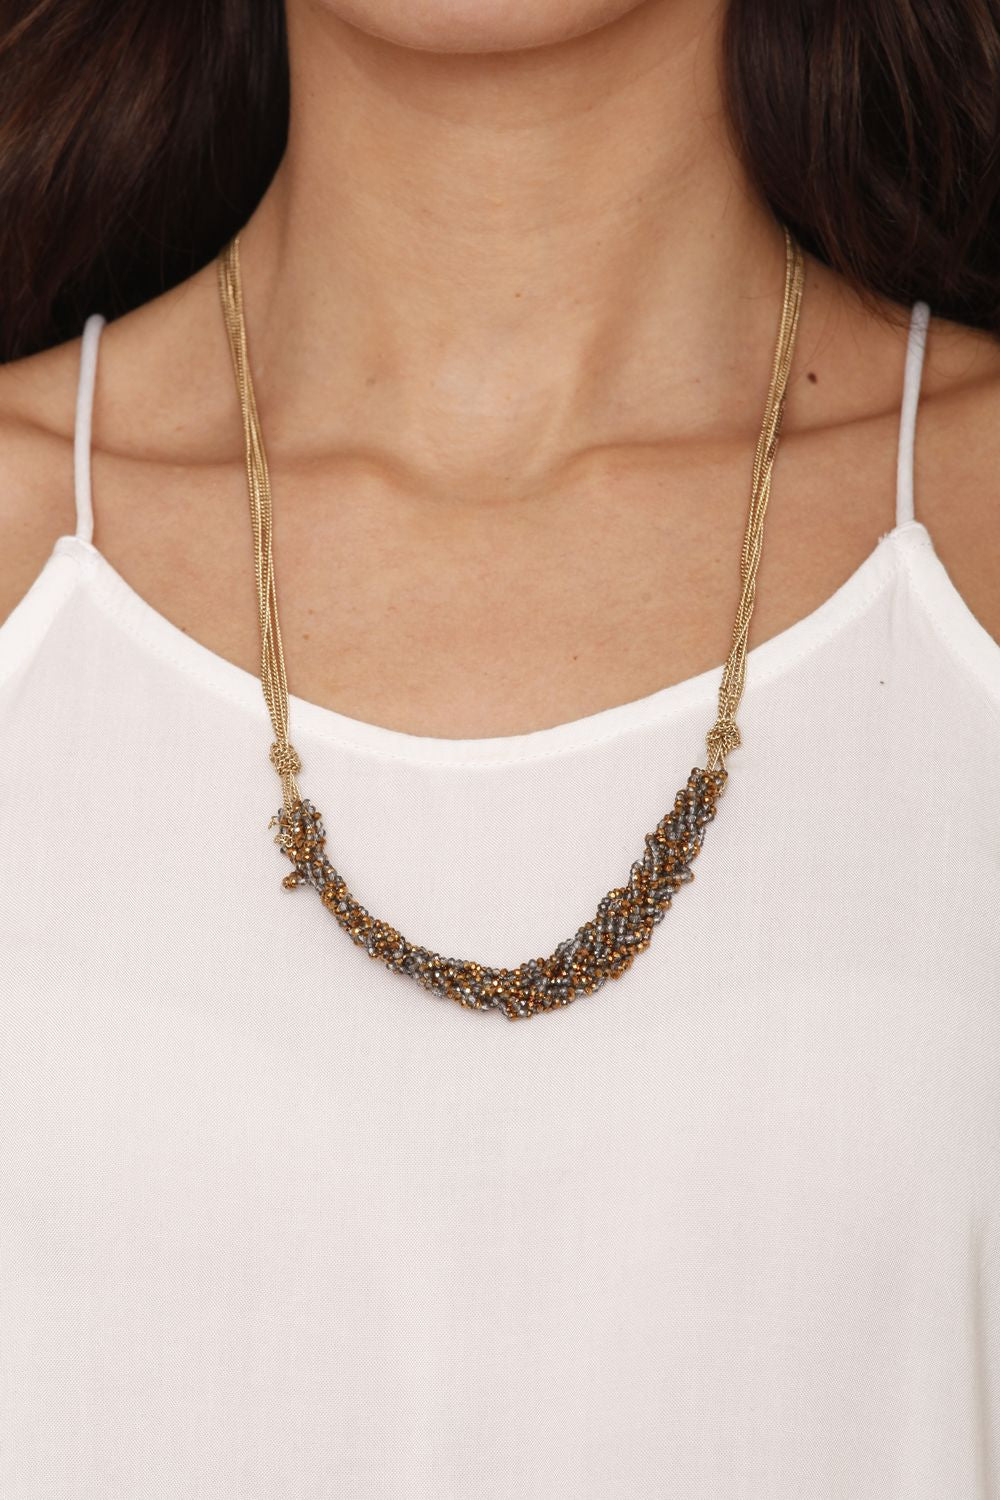 Braided Beads Necklace